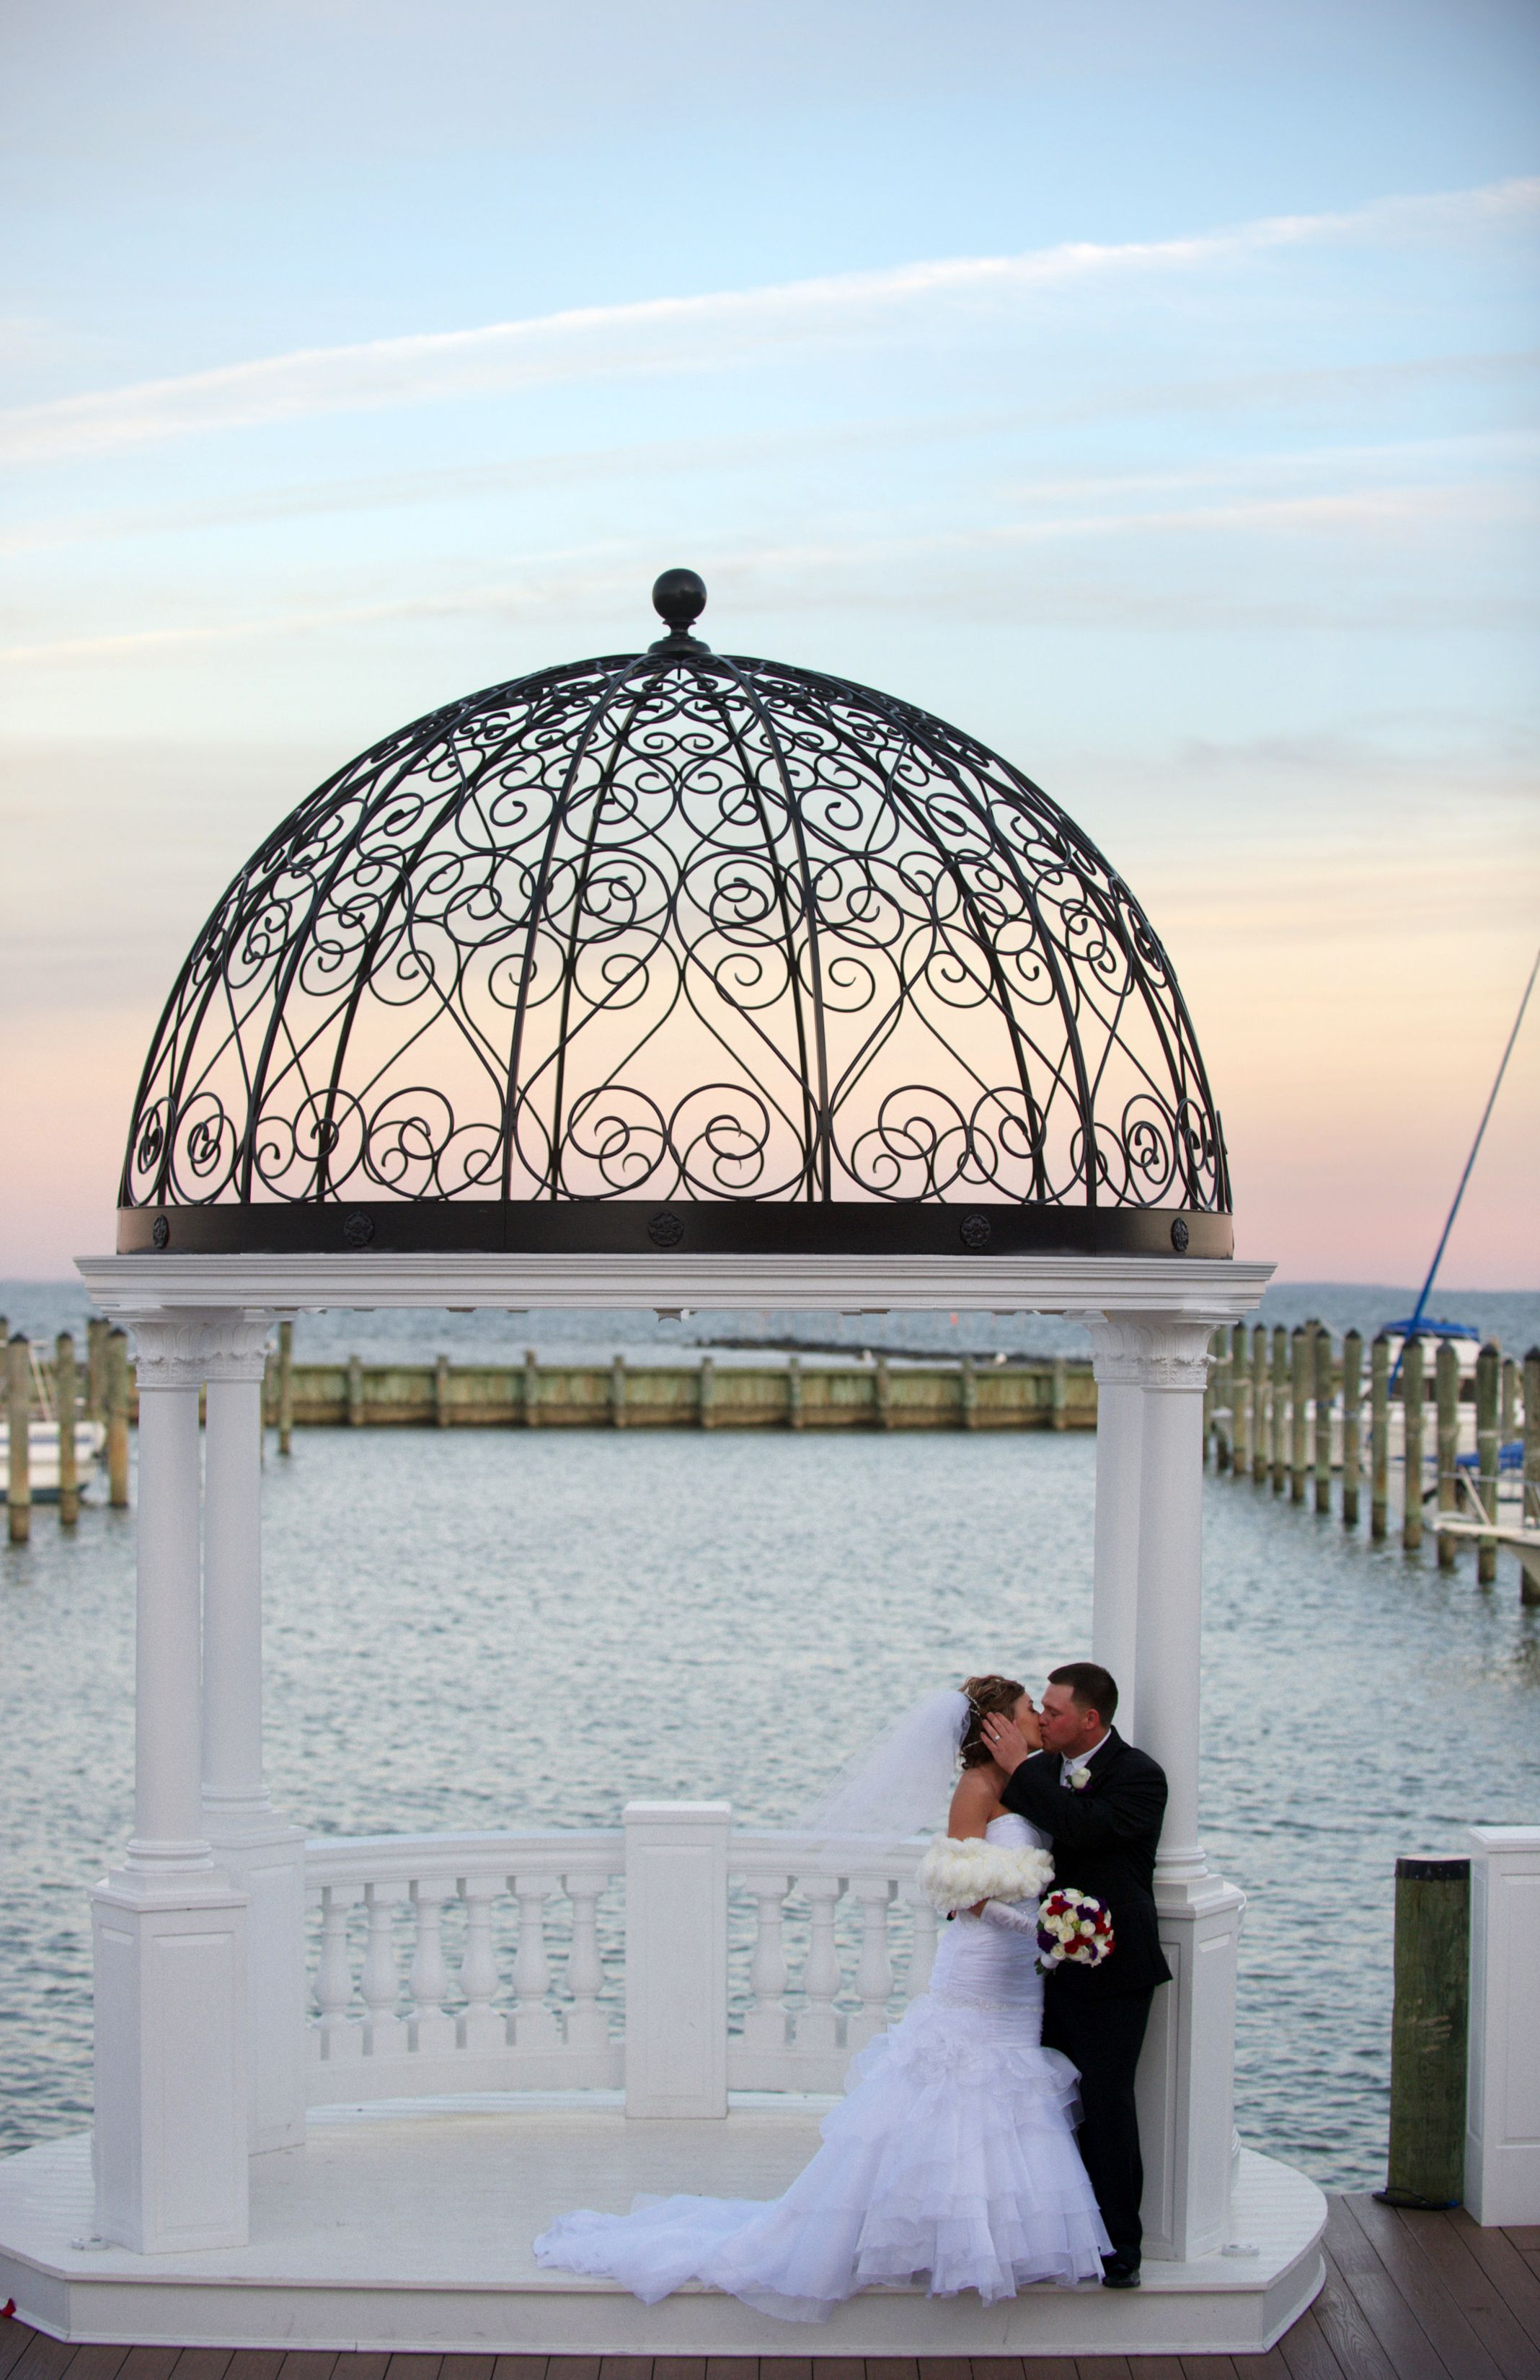 Chesapeake Beach Resort Spa At Our Wedding Every Reception Is Customized To Match The Vision Of Your Special Day With Spectacular Views